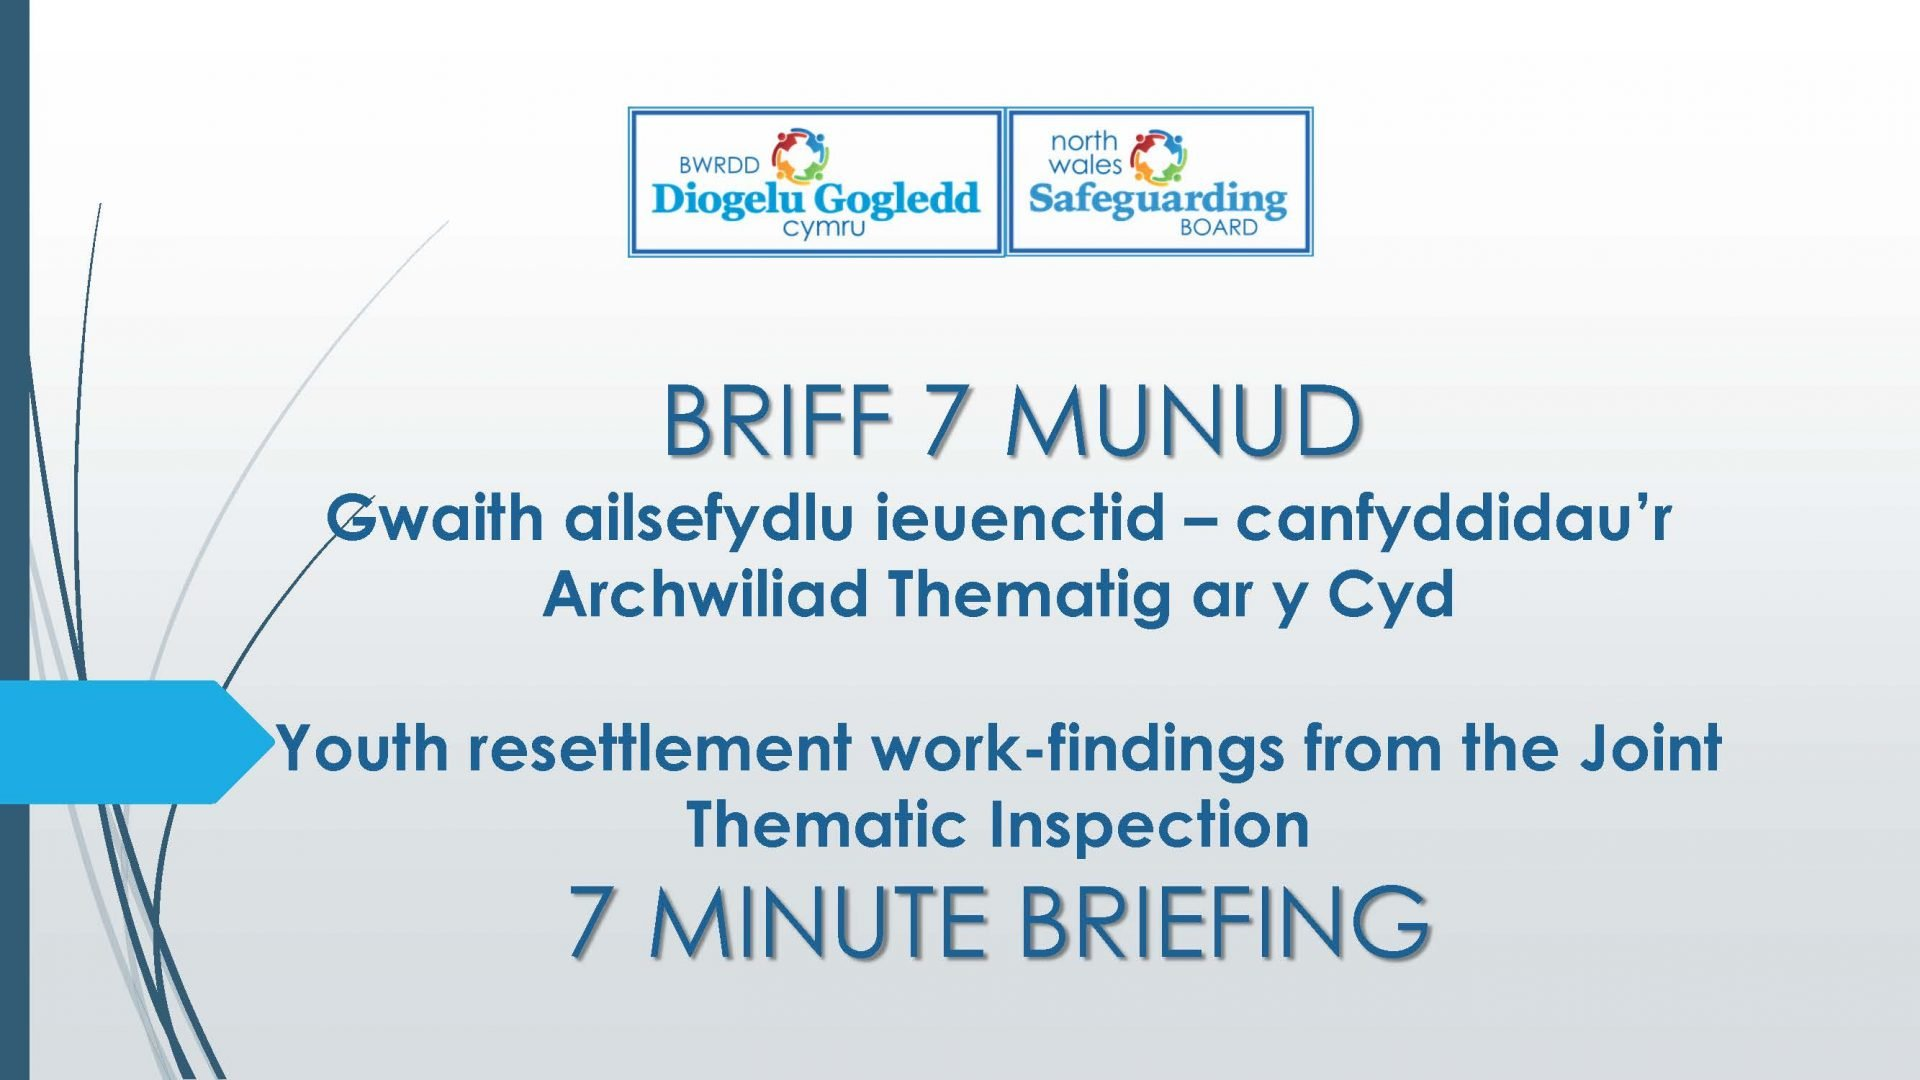 7 Minute Briefing - Youth Resettlement Work